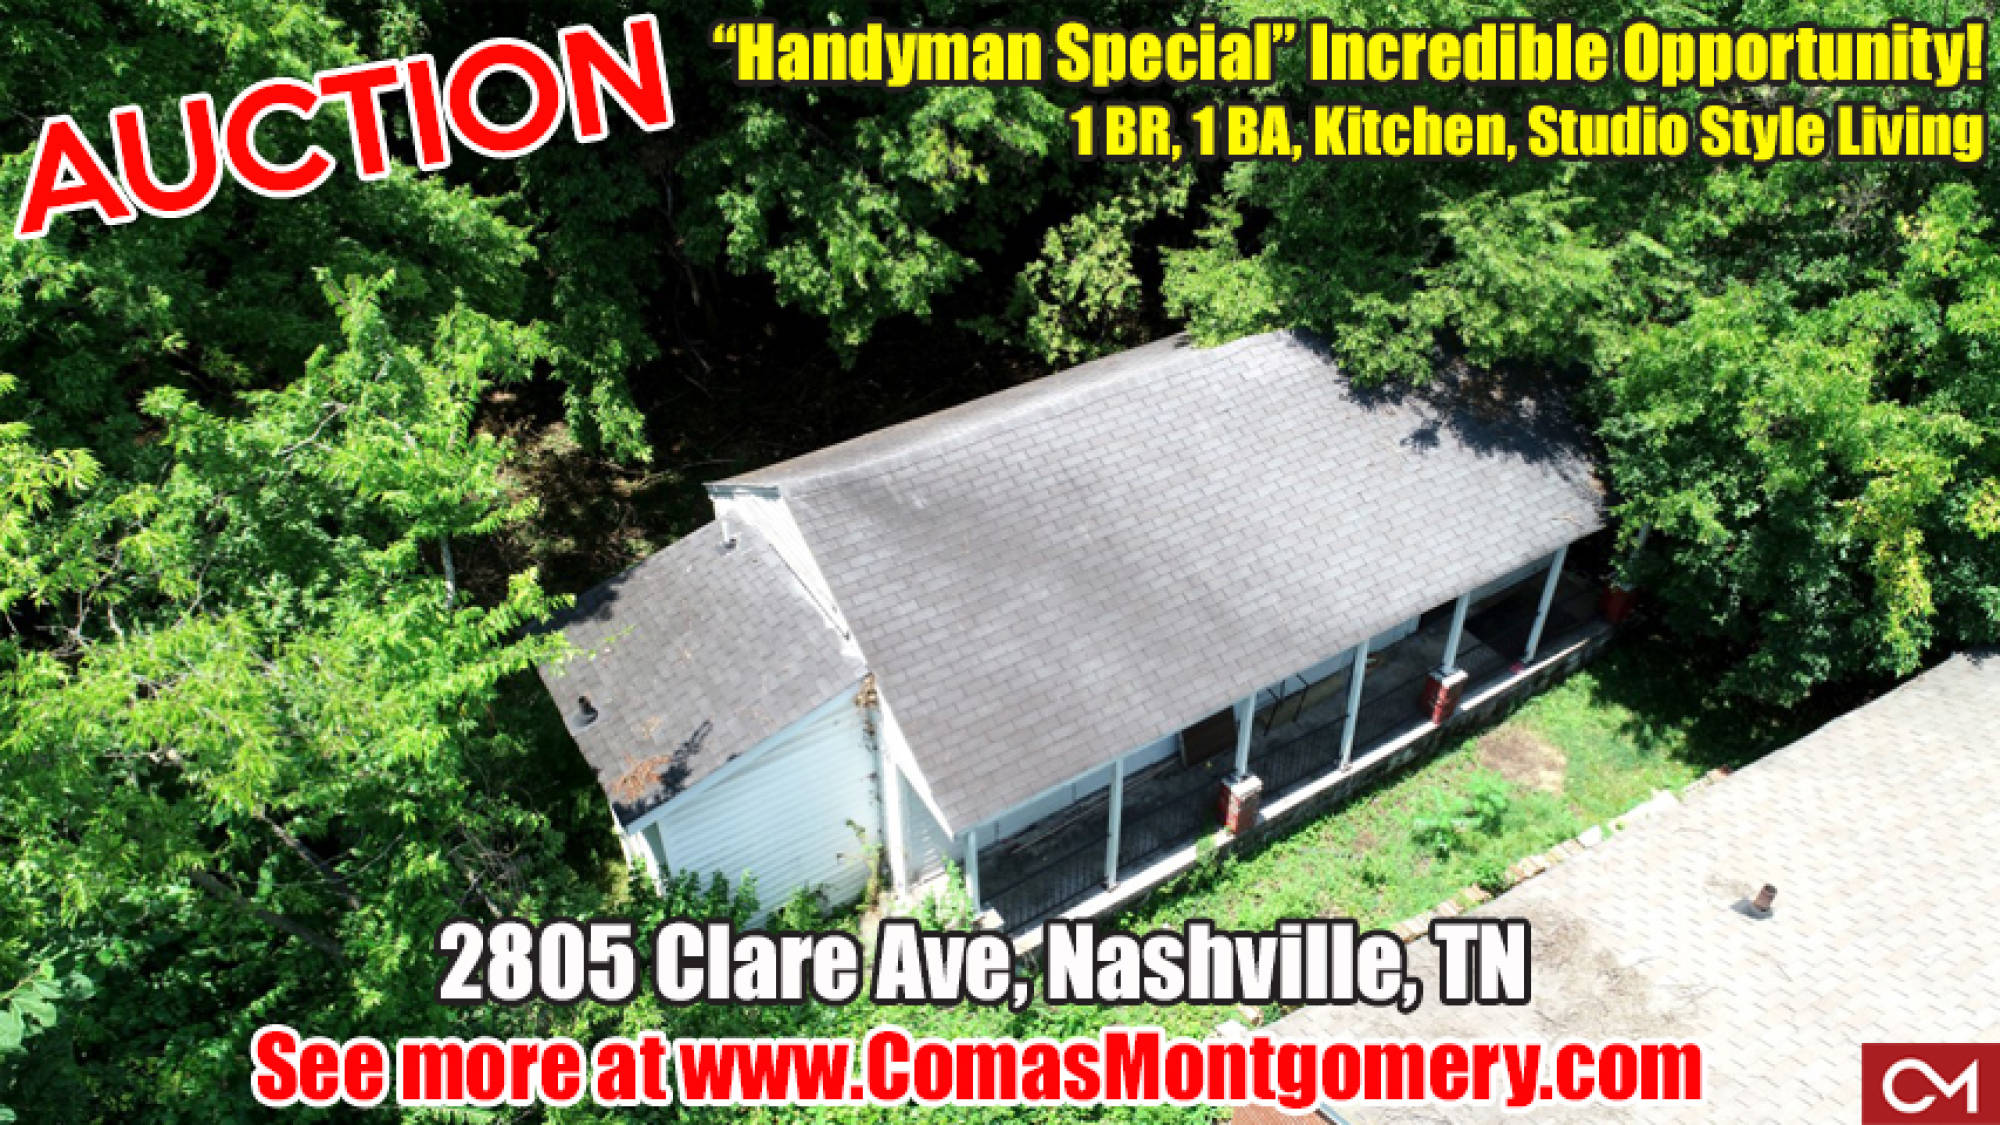 House, Home, For Sale, Nashville, Davidson, County, 28th Ave, I-40, Investment, Property, Comas, Montgomery, Tennessee